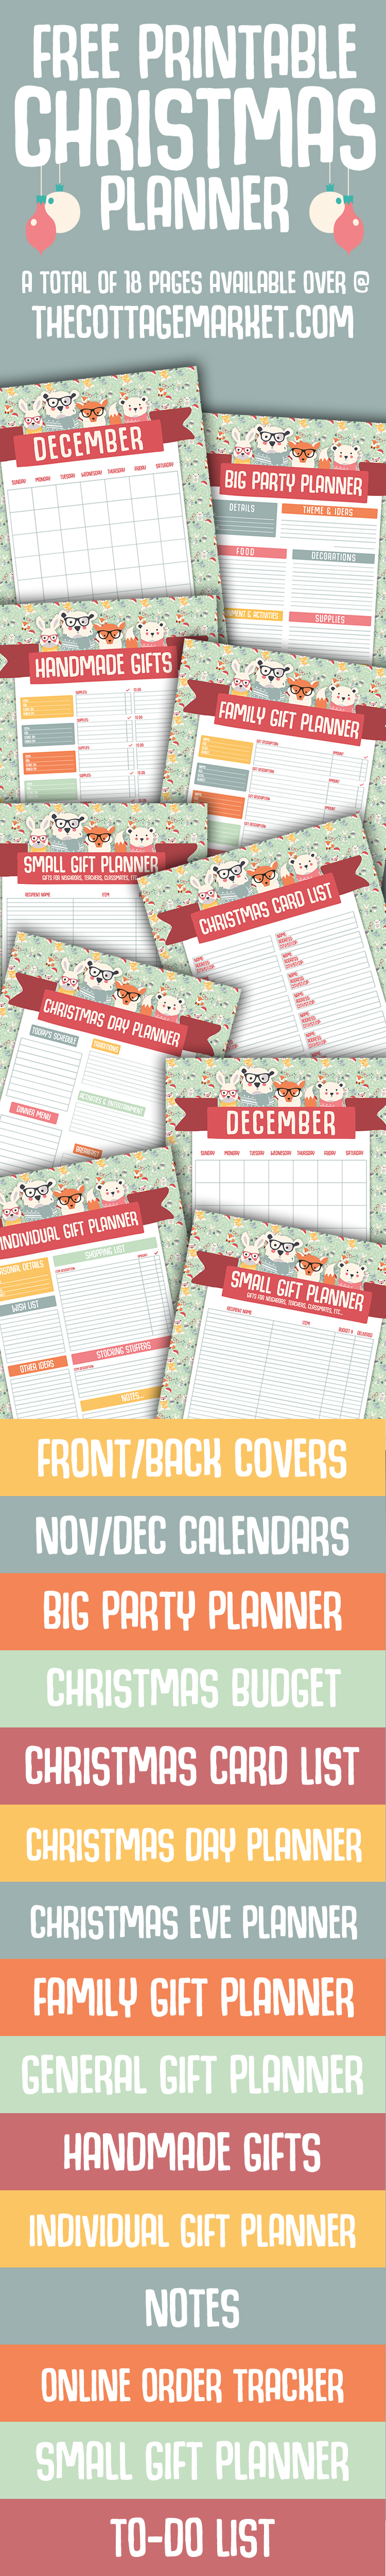 TCM-FreePrintable-ChristmasPlanner-Tower